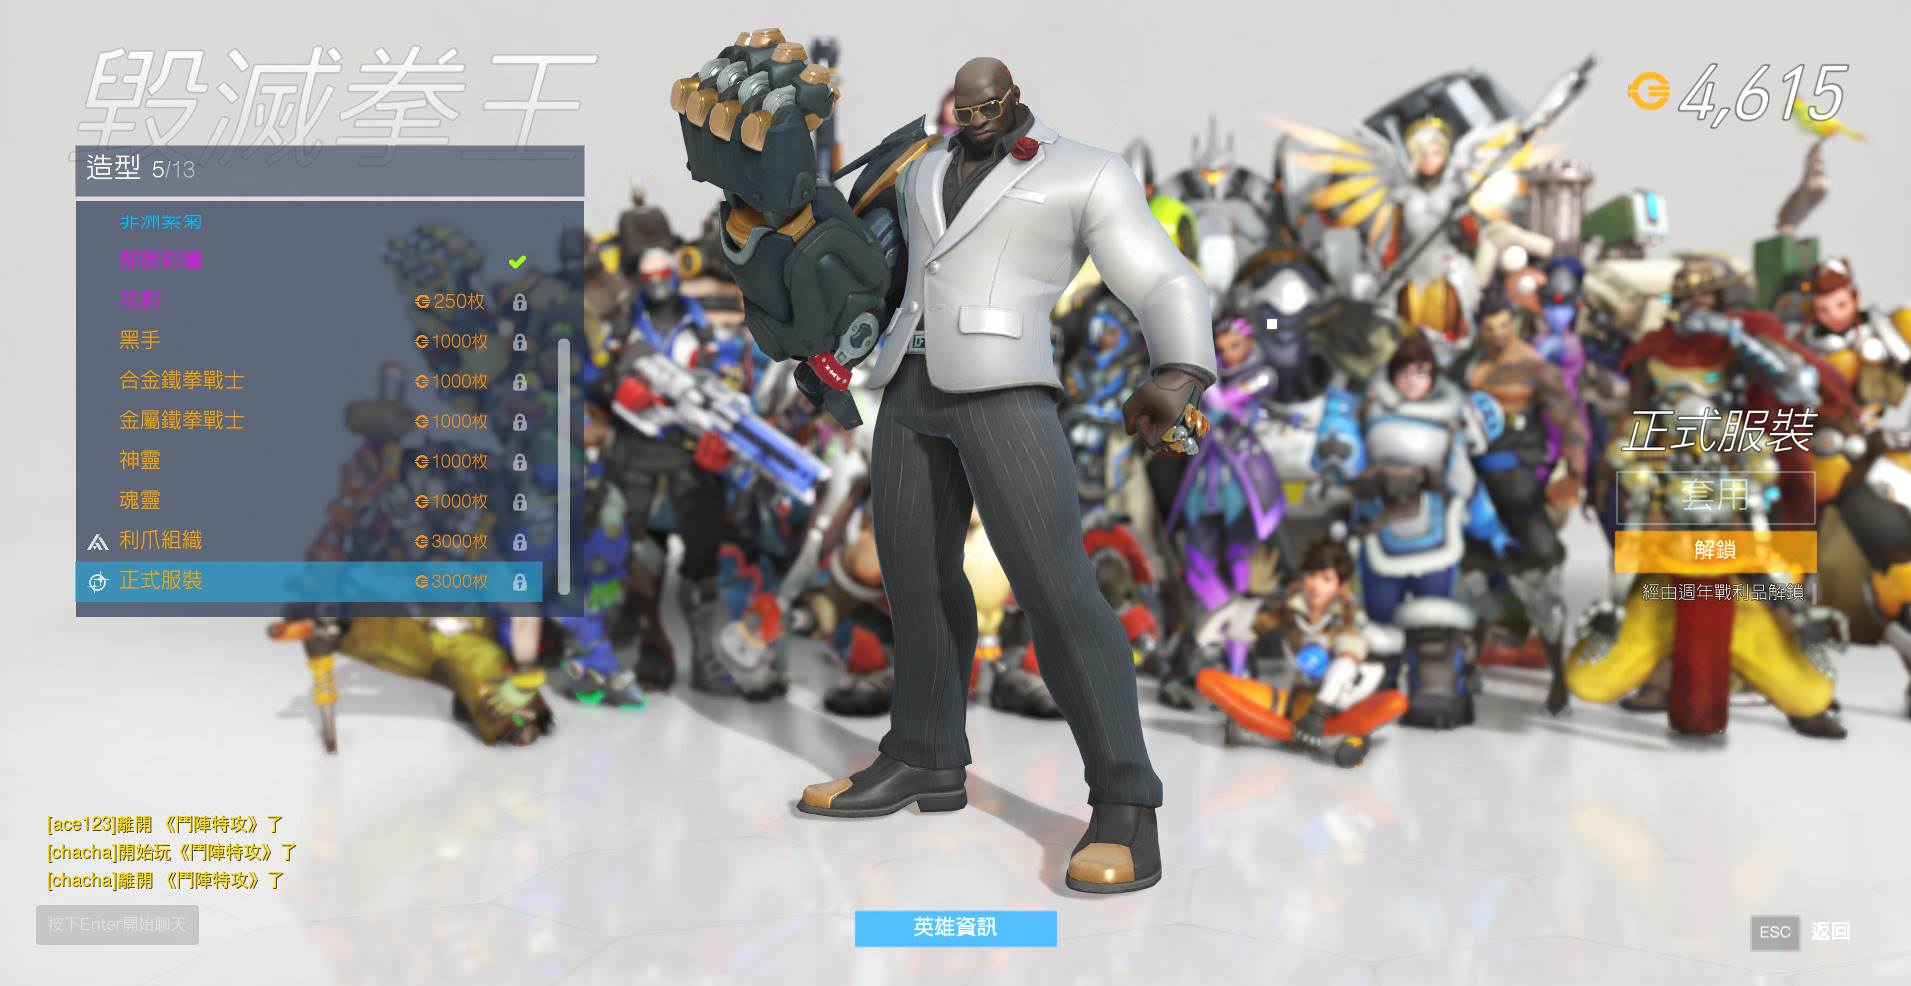 Overwatch's Newest Map and Cosmetics Revealed